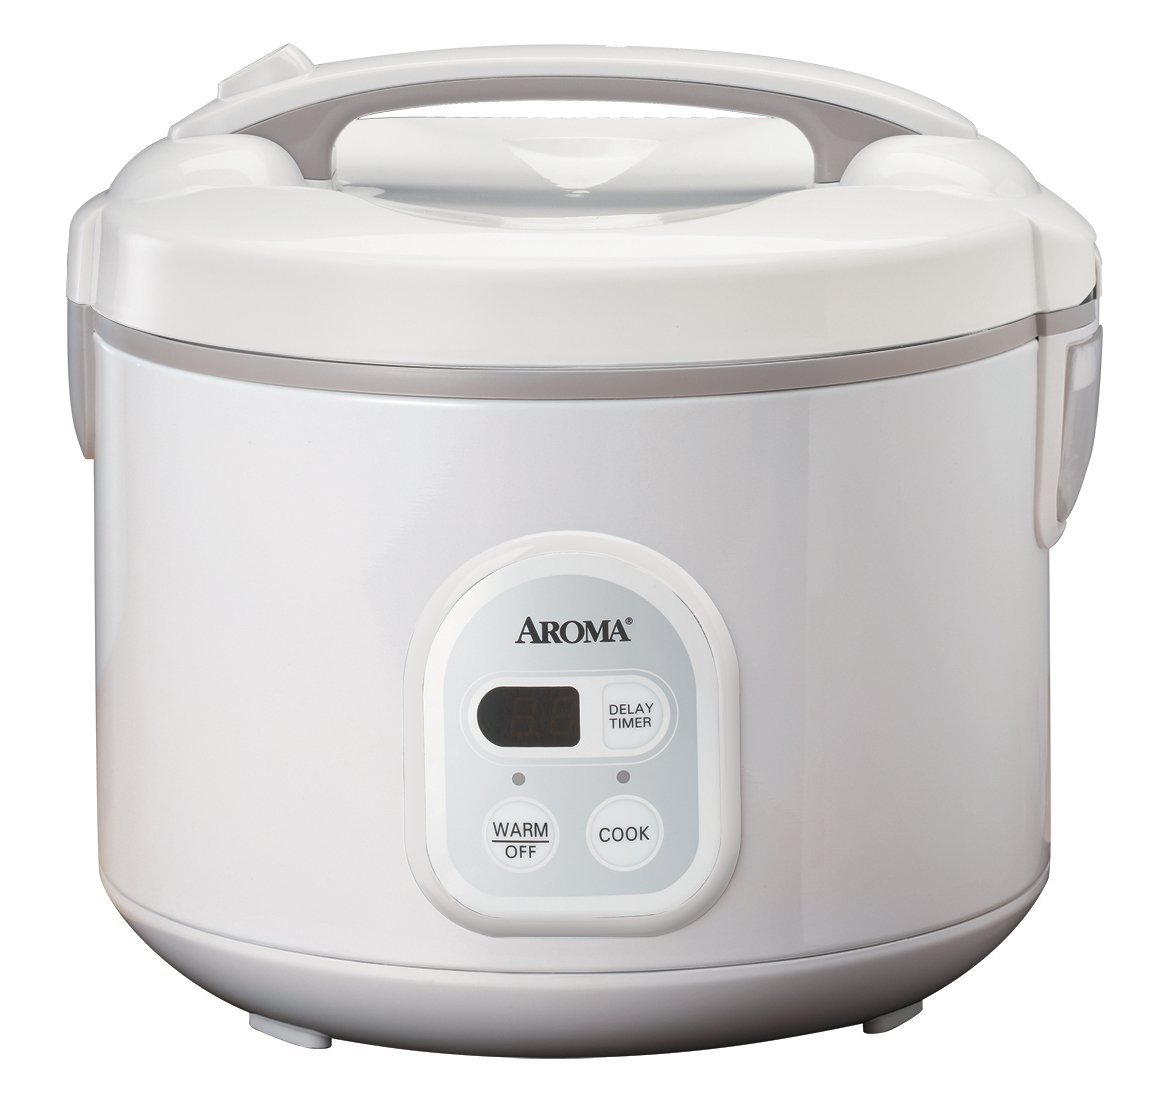 Aroma Rice Cooker (View 7 of 10)